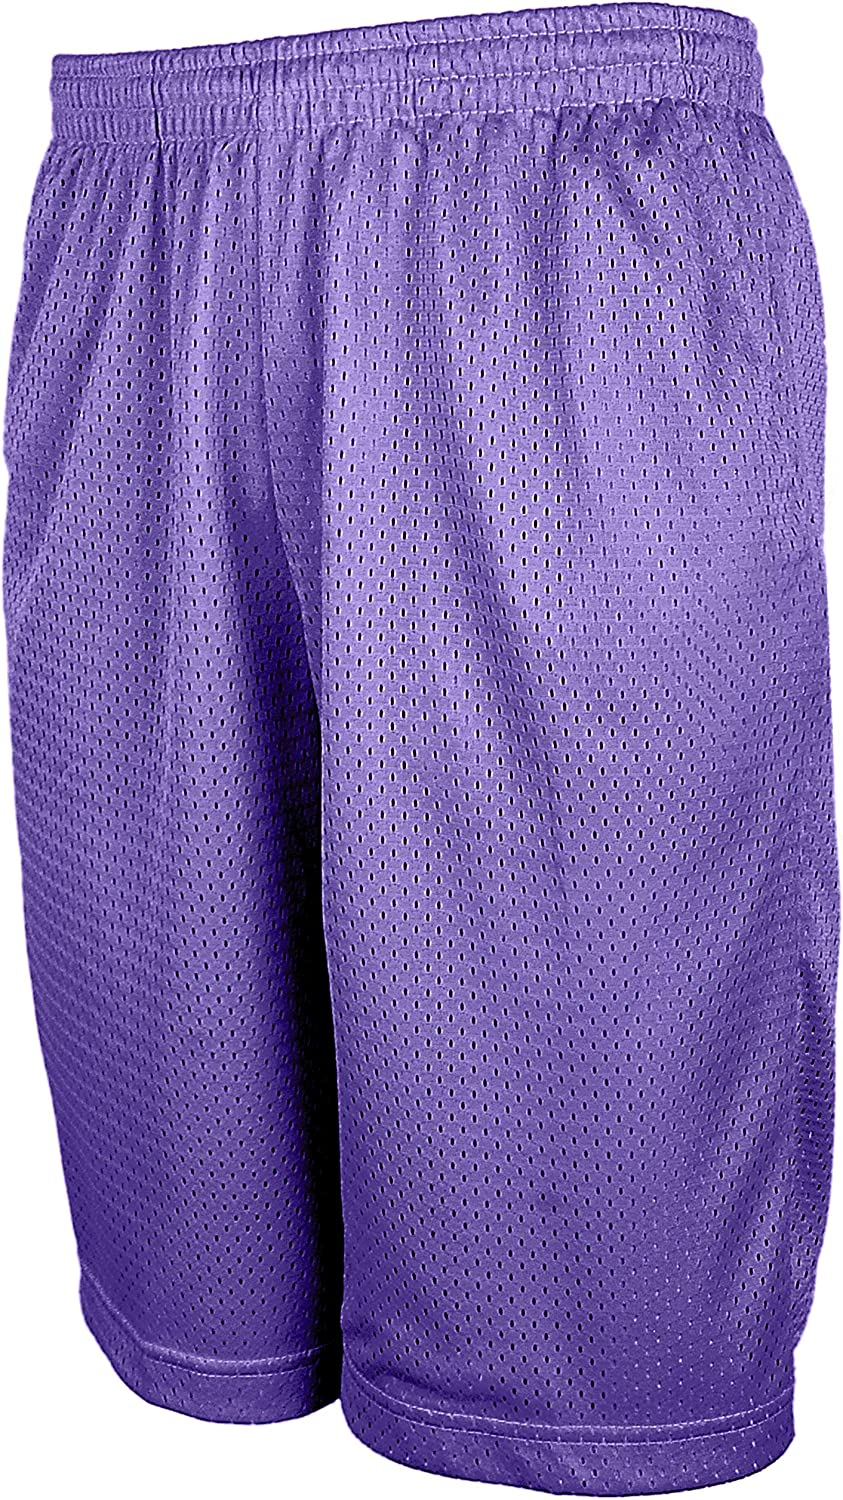 TL Men's Athletic Gym Workout Shorts with Pockets, Lightweight Mesh or Dazzle Basketball Shorts in Packs or Single